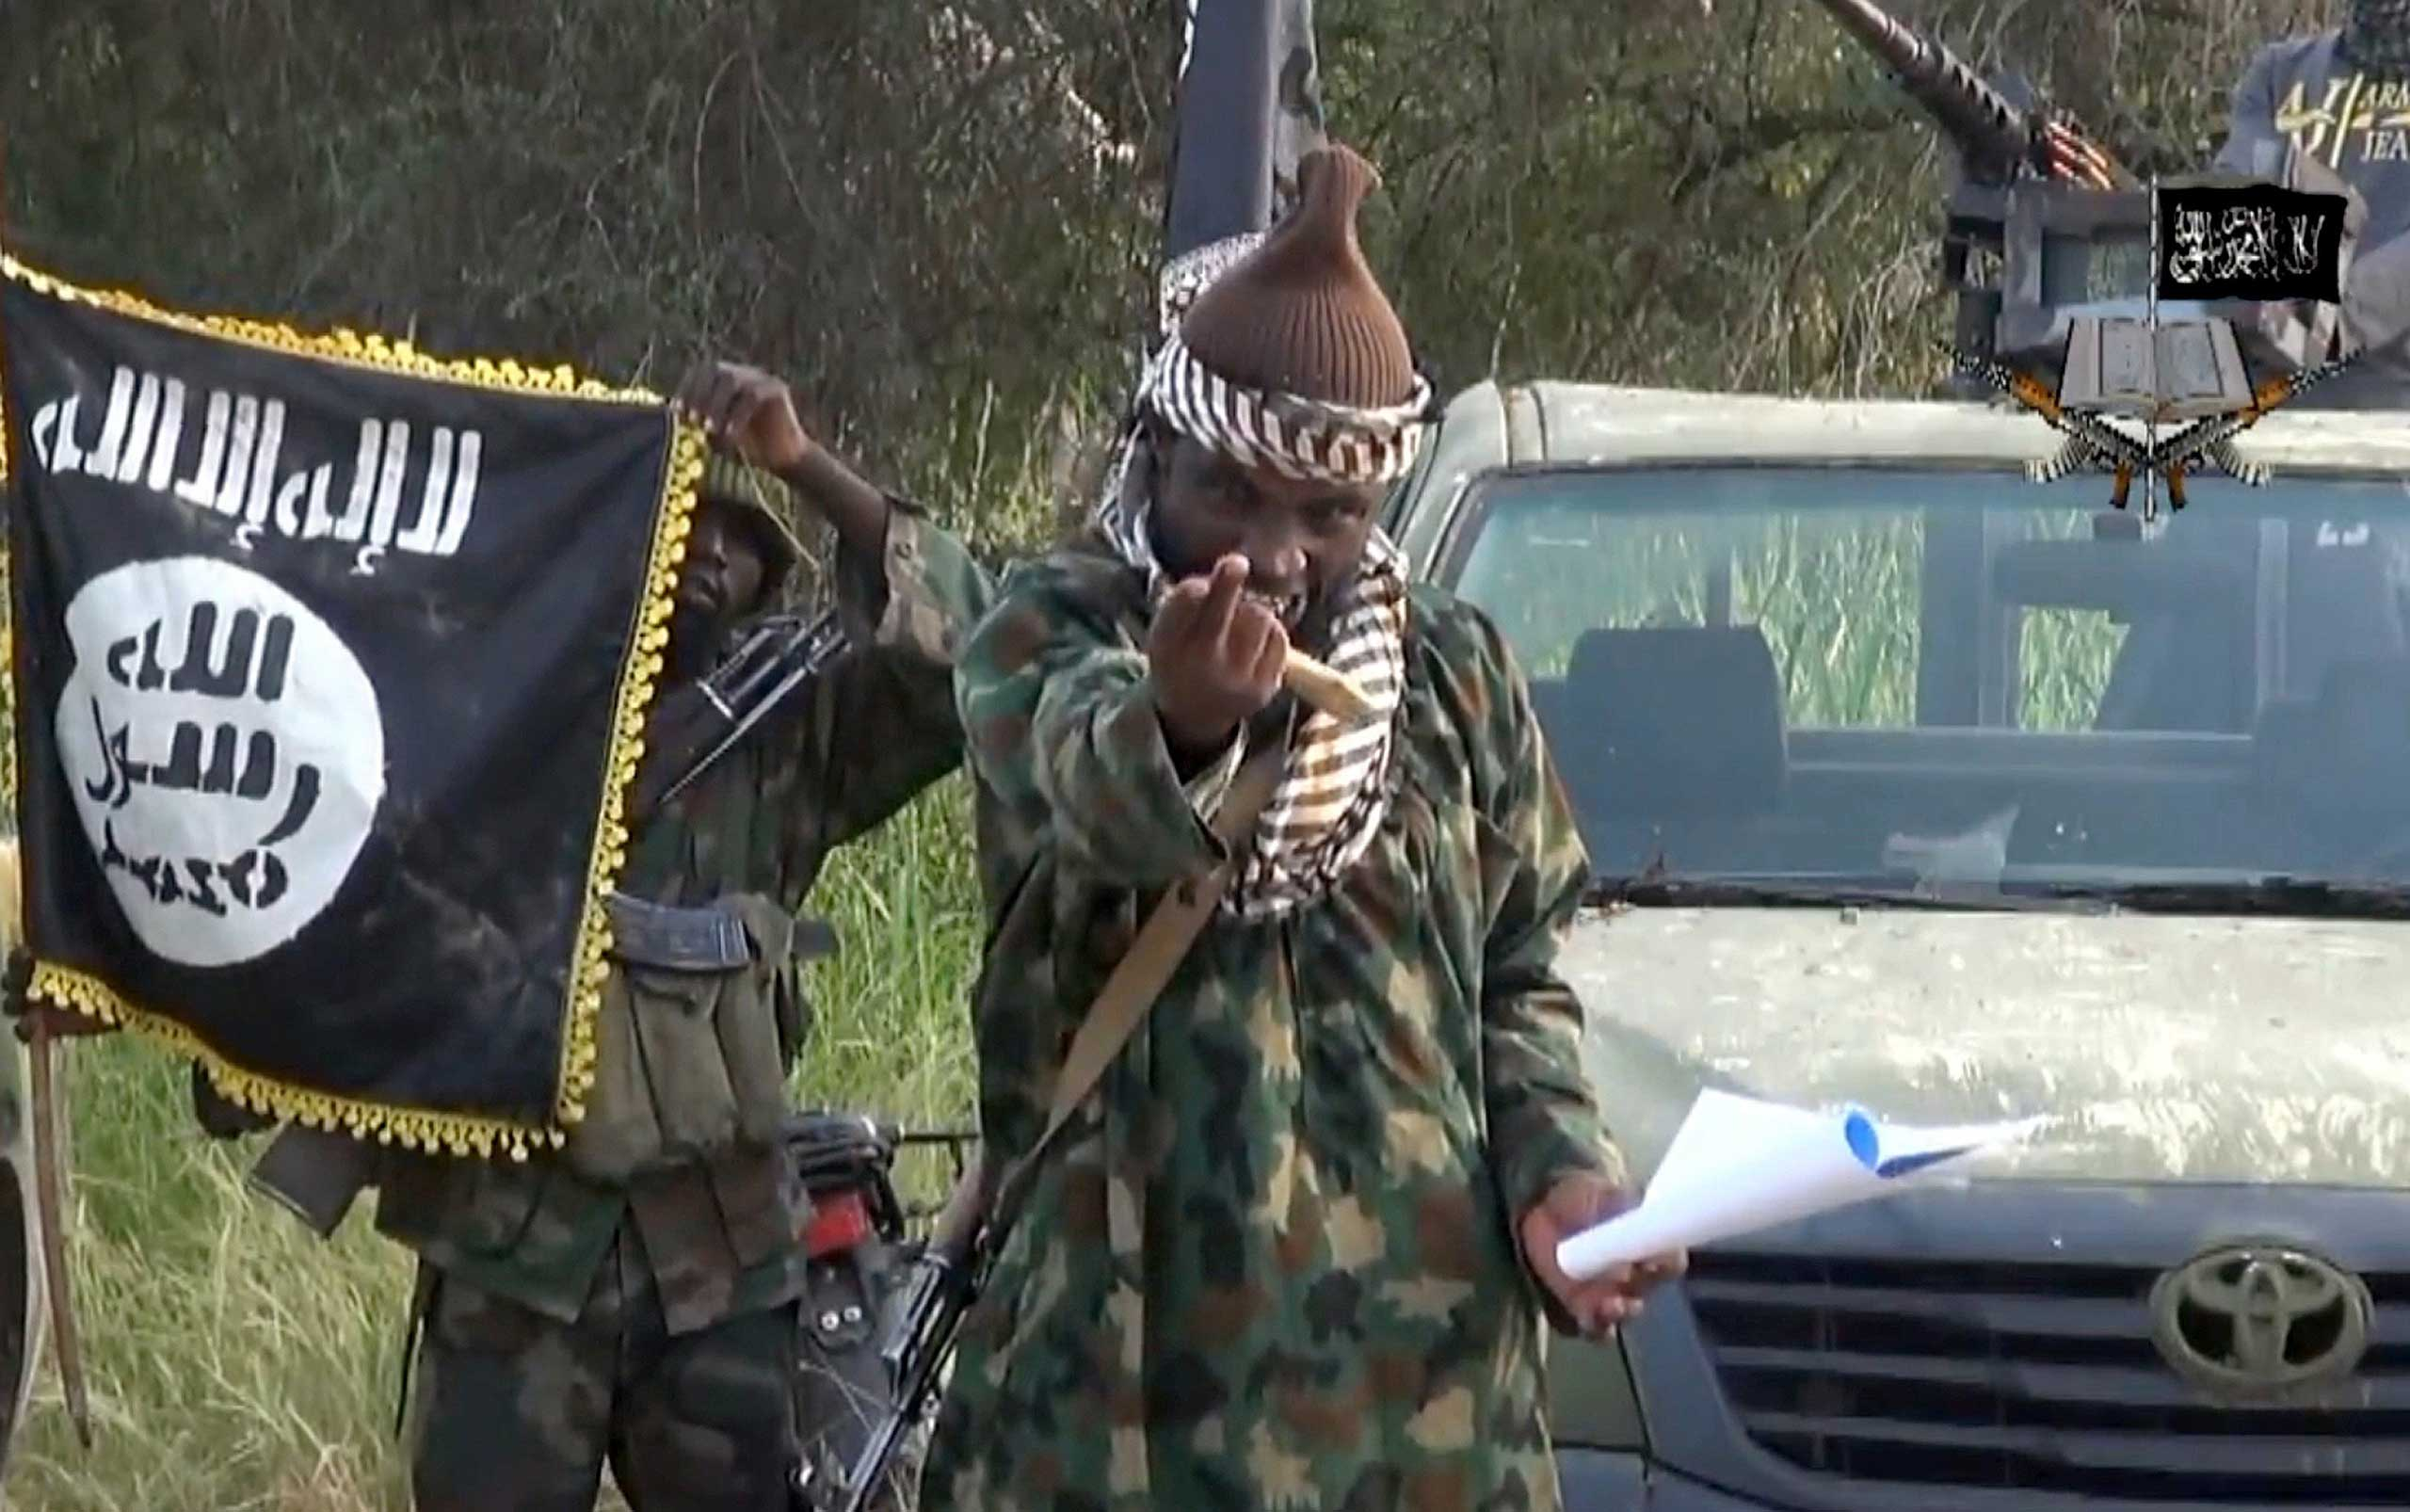 Screengrab taken on Oct. 2, 2014 from a video released by the Nigerian Islamist extremist group Boko Haram, shows group's leader Abubakar Shekau.